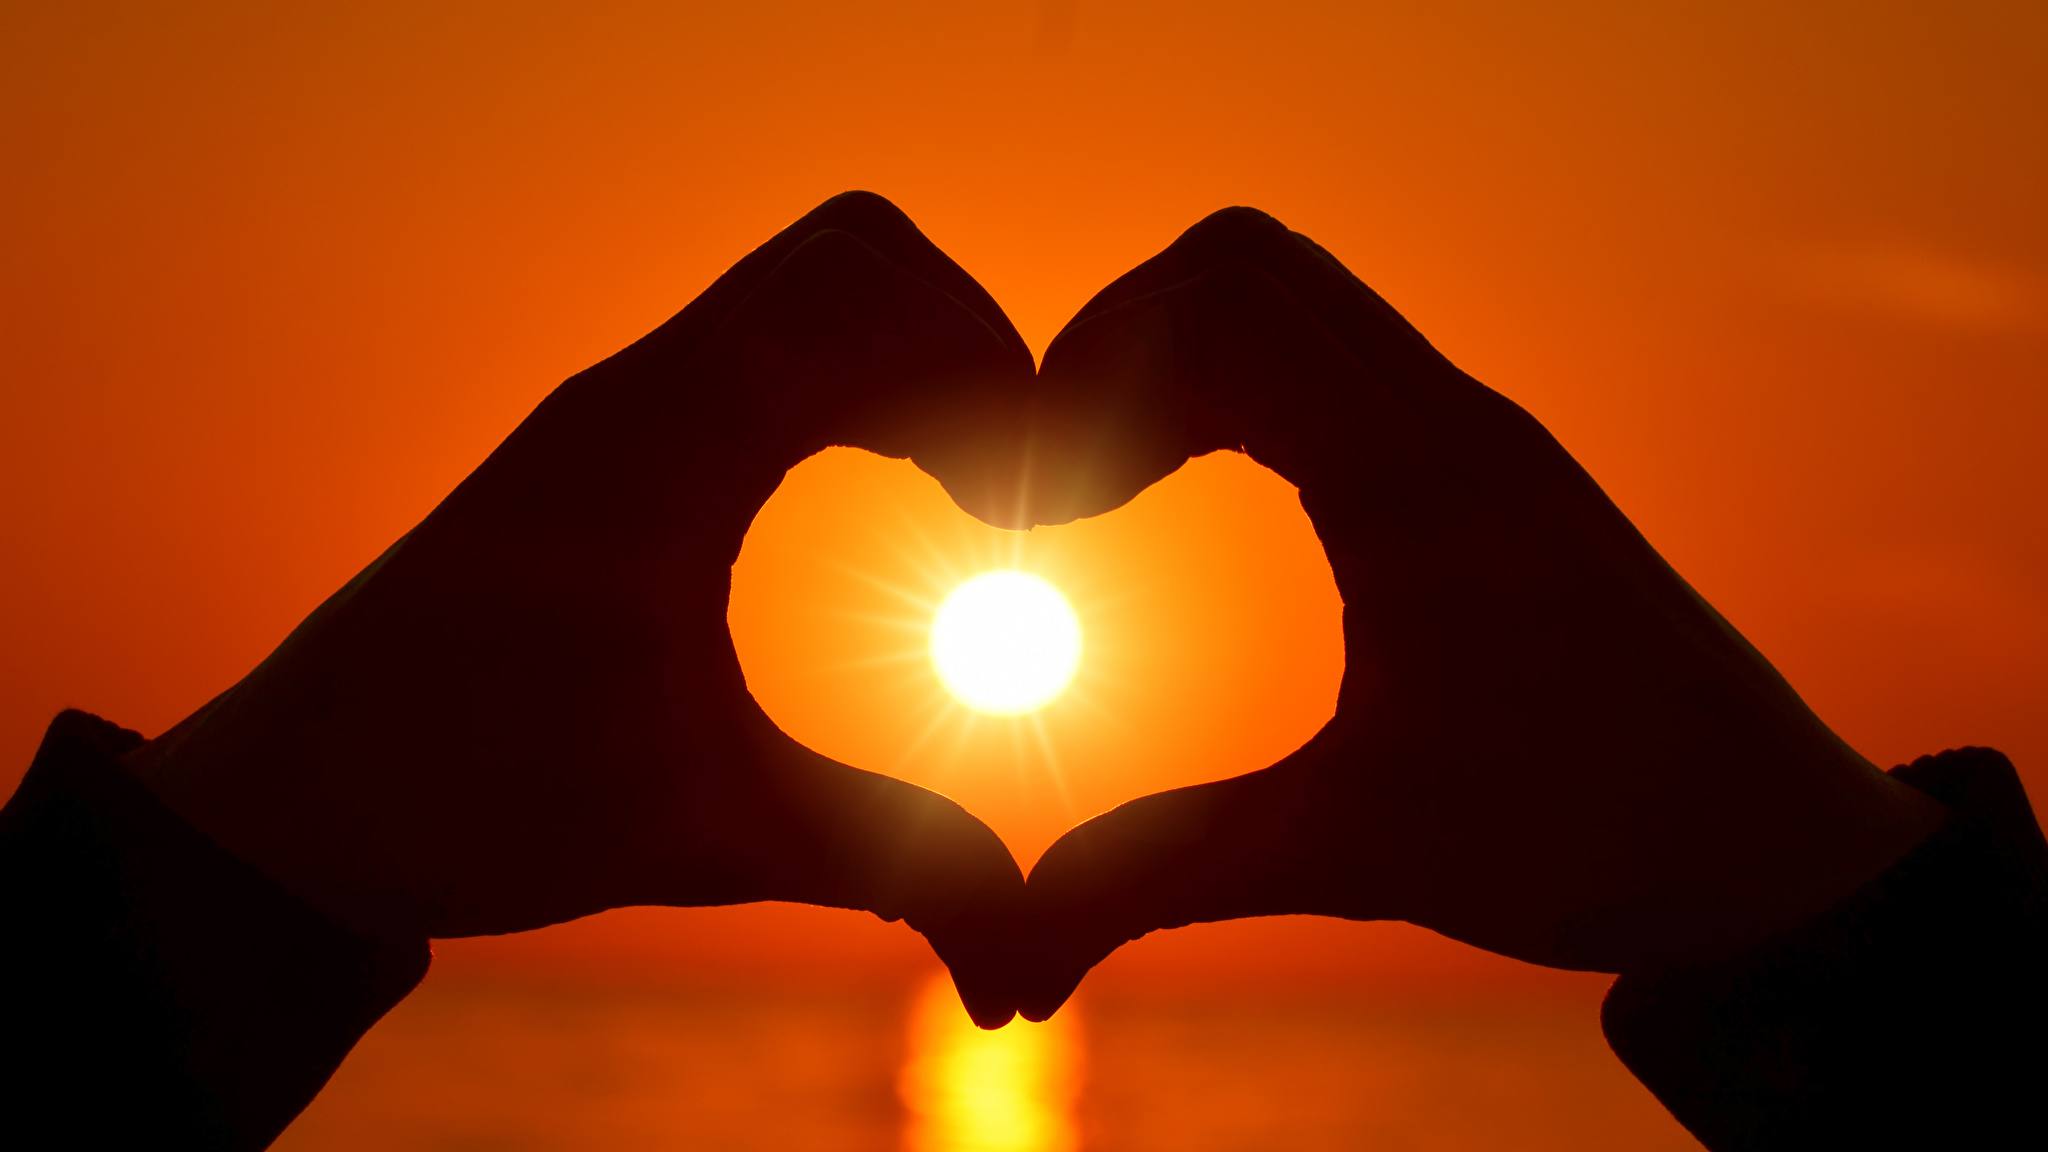 Love_Sunrises_and_sunsets_Fingers_Hands_Heart_Sun_532758_2048x1152.jpg